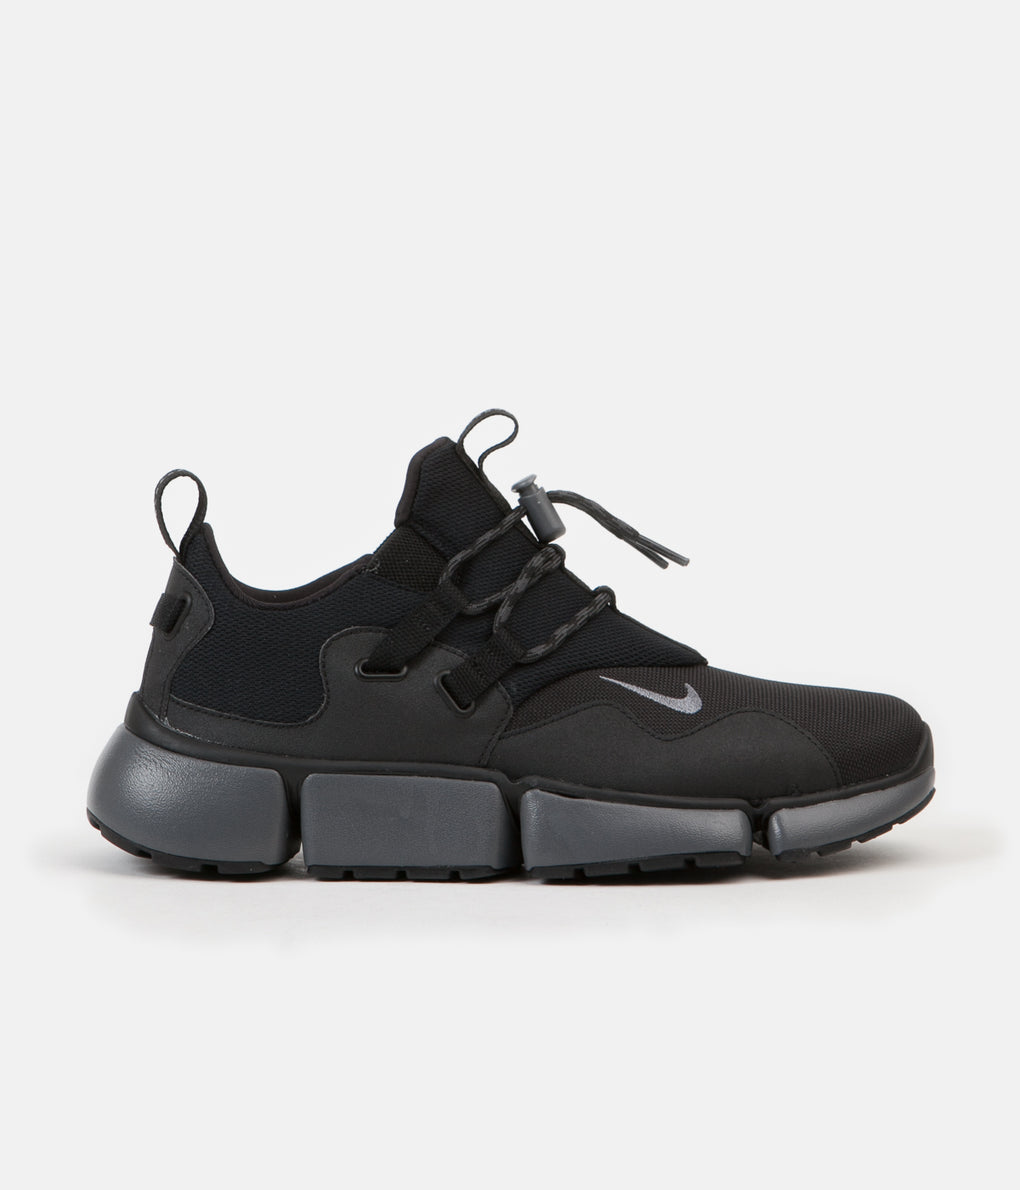 Nike Pocketknife DM Shoes - Black / Dark Grey - Anthracite